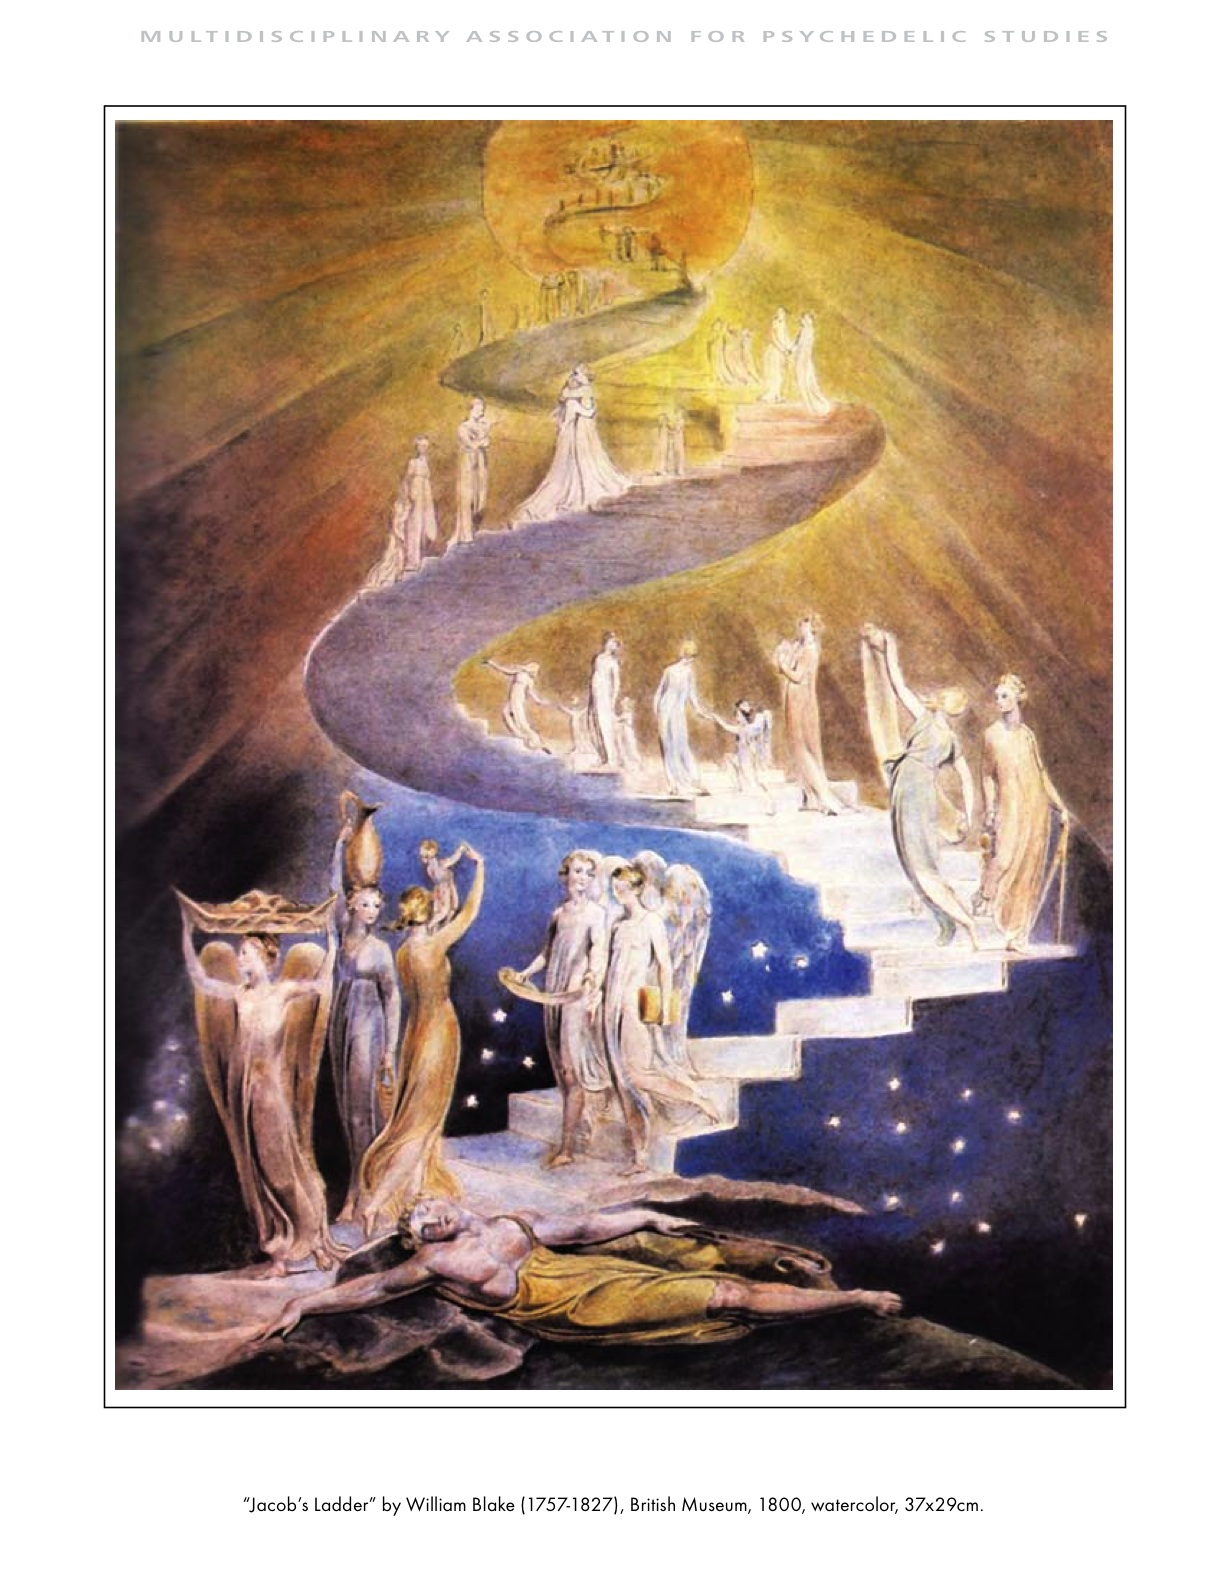 MAPS Bulletin Vol xx No 1: Spring 2010 - Inside Cover Image - Psychedelic Art - Jacob's Ladder by William Blake (1757-1827)